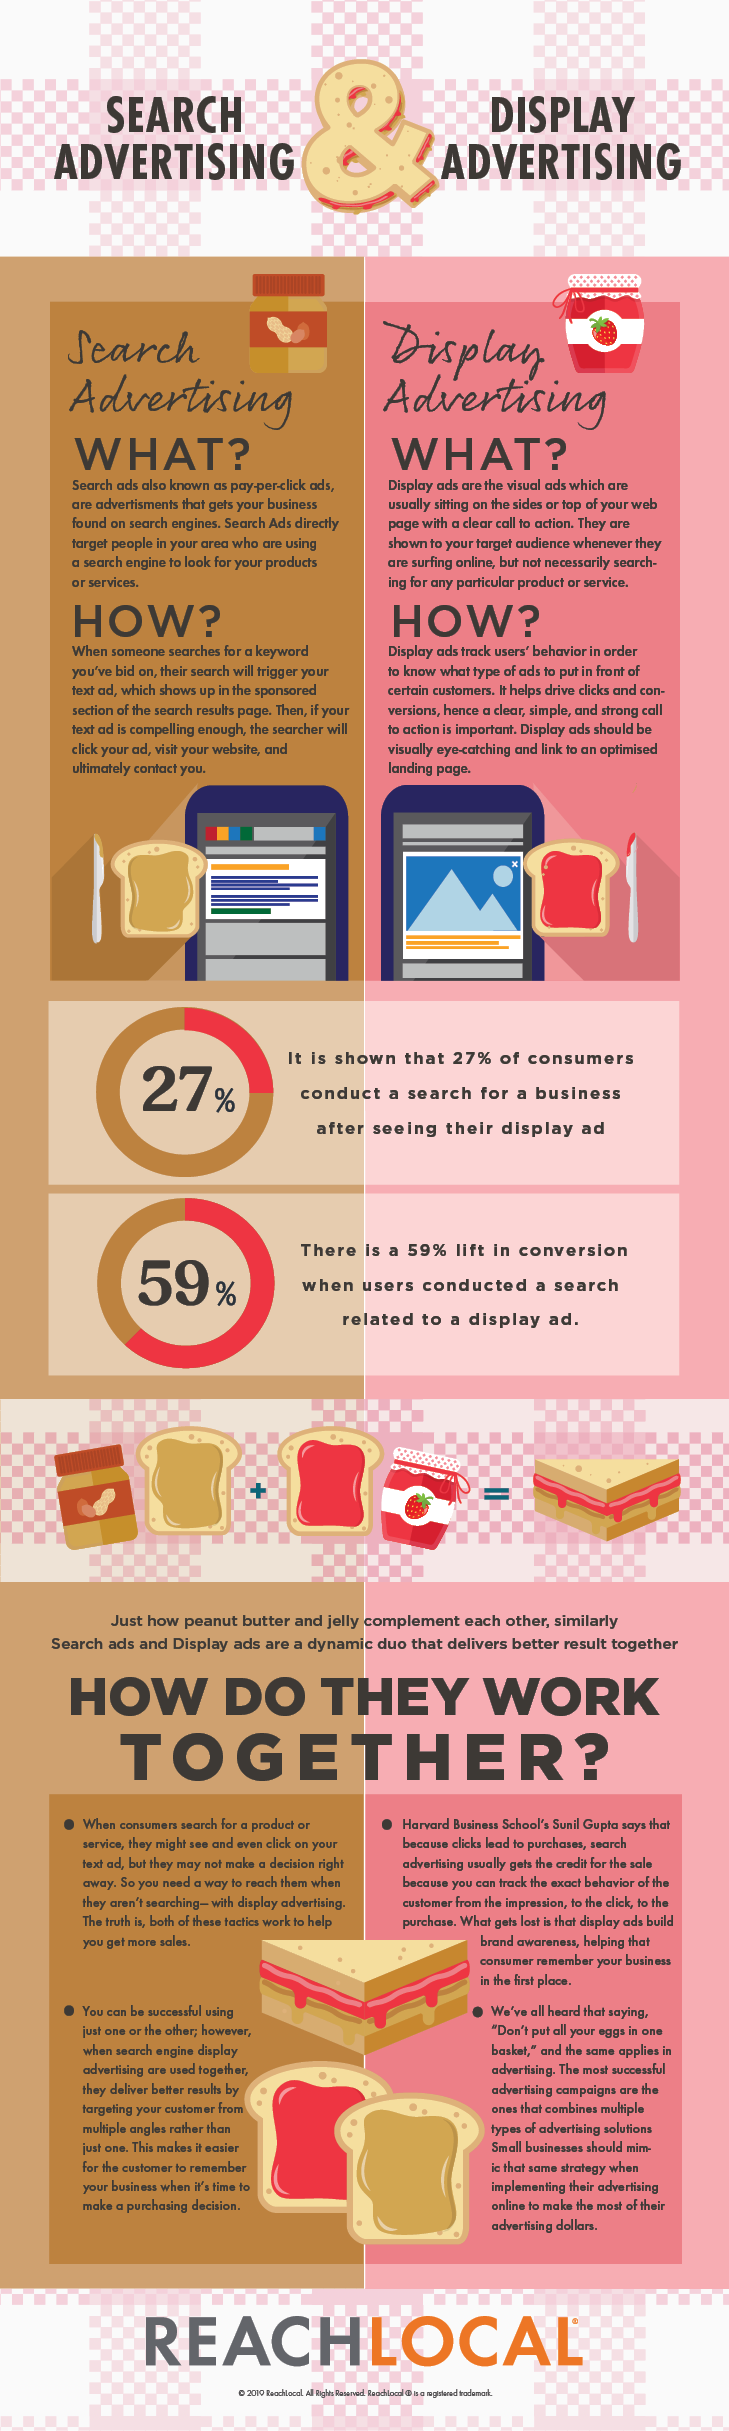 ReachLocal Infographic: Search Advertising and Display Advertising